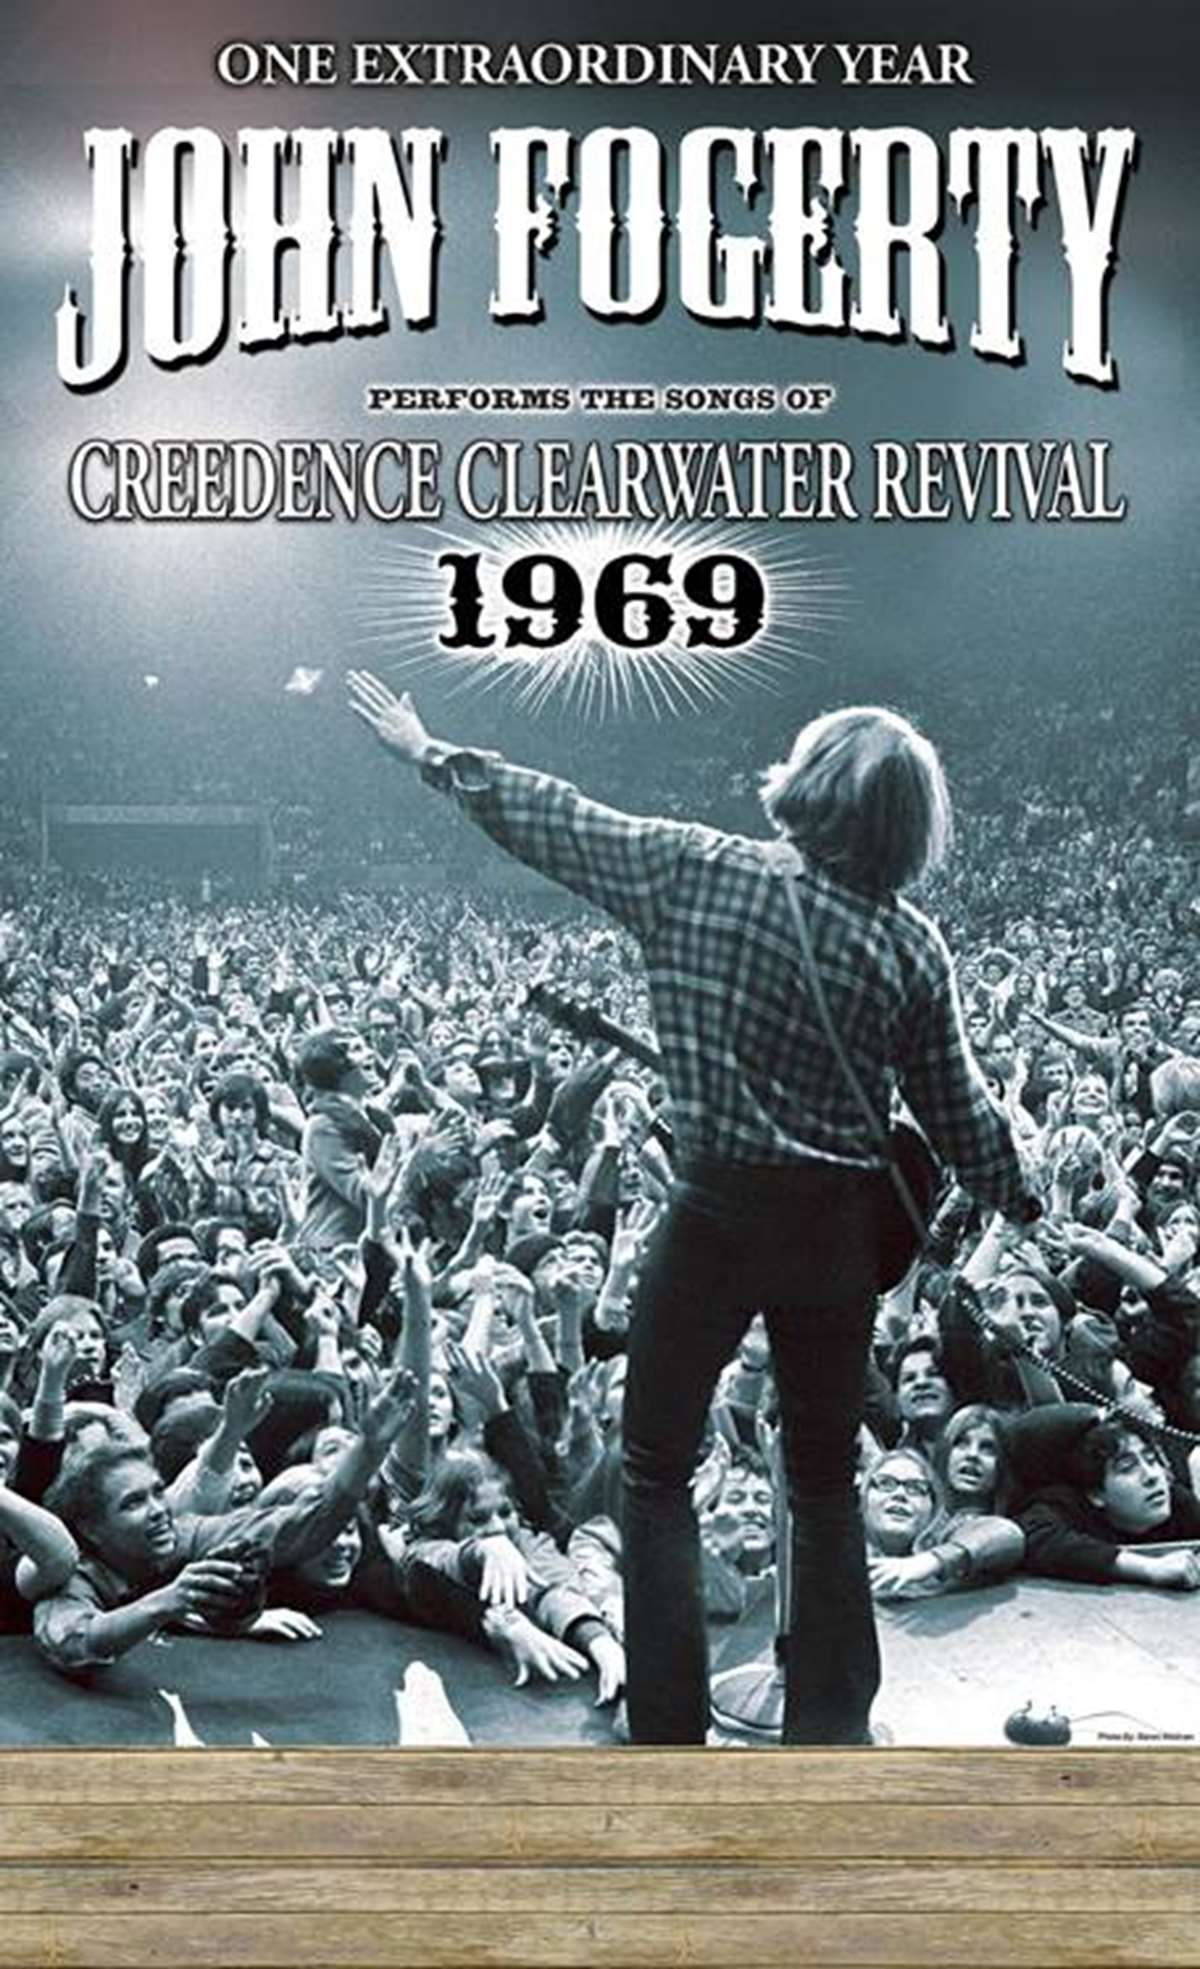 John Fogerty interpretará los grandes éxitos de Creedence Clearwater Revival.